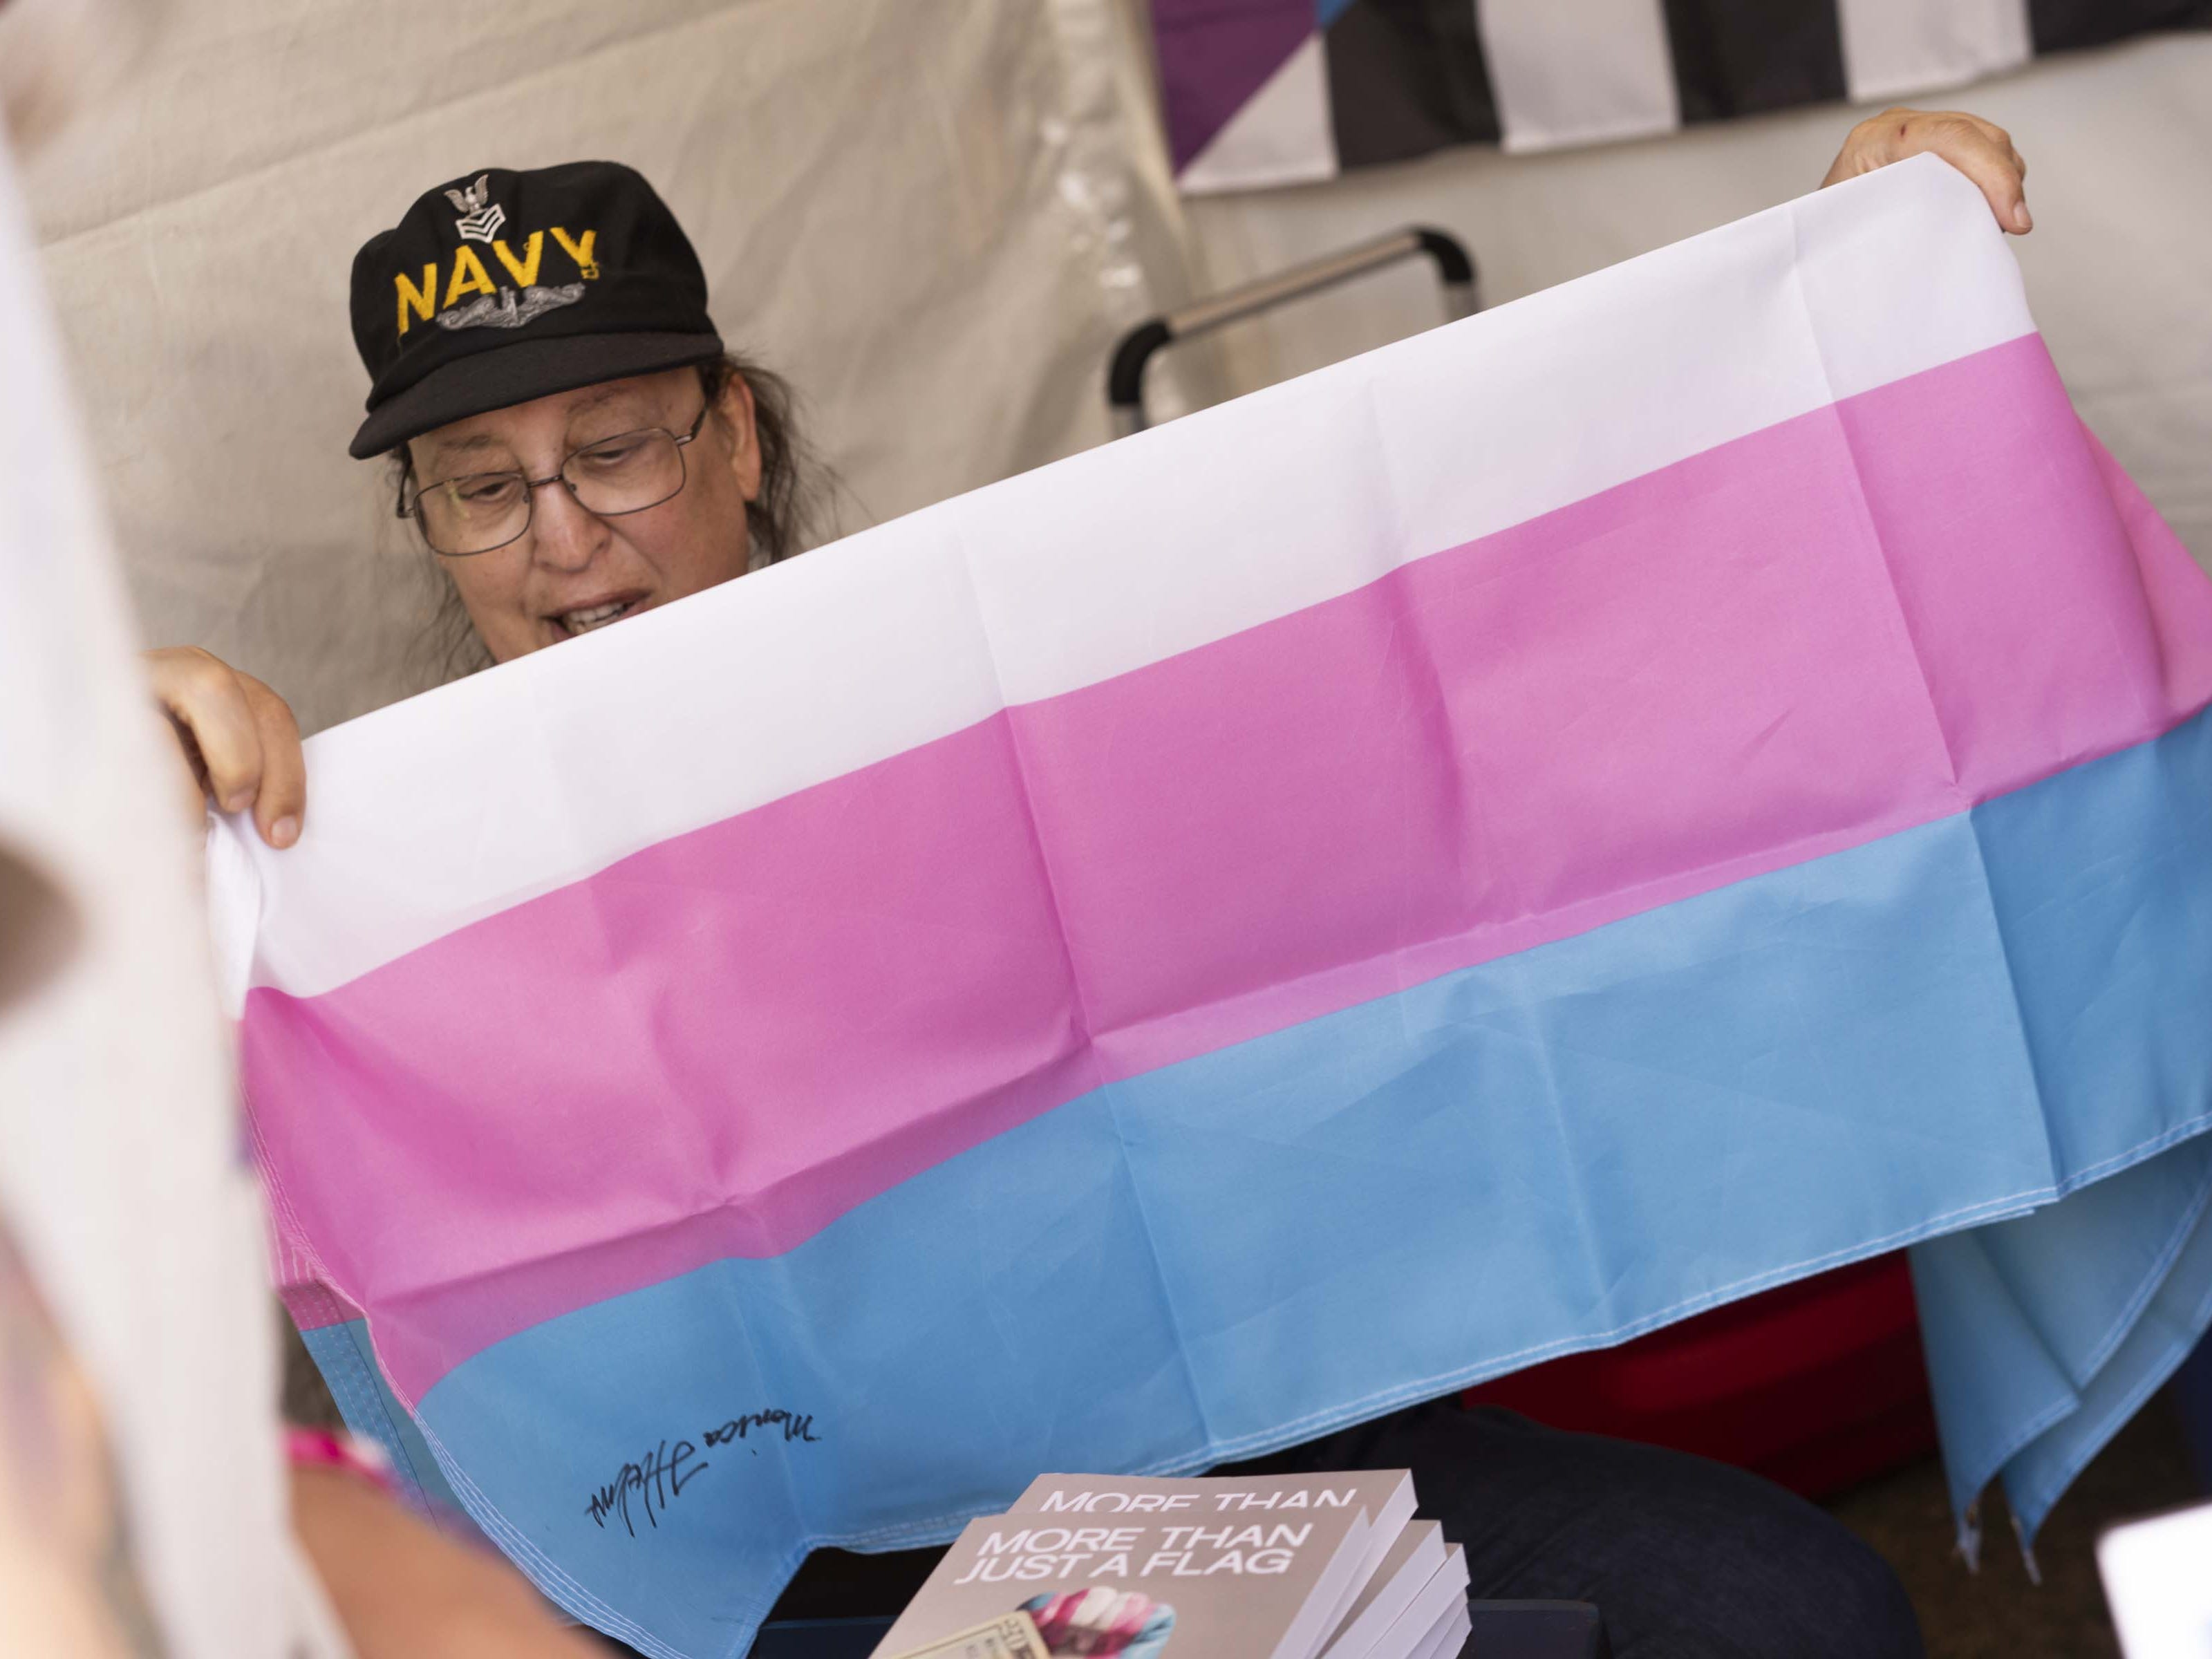 Monica Helms, who created transgender pride flag, signs a books for fans during Phoenix Pride at Steele Indian School Park on April 6, 2019.